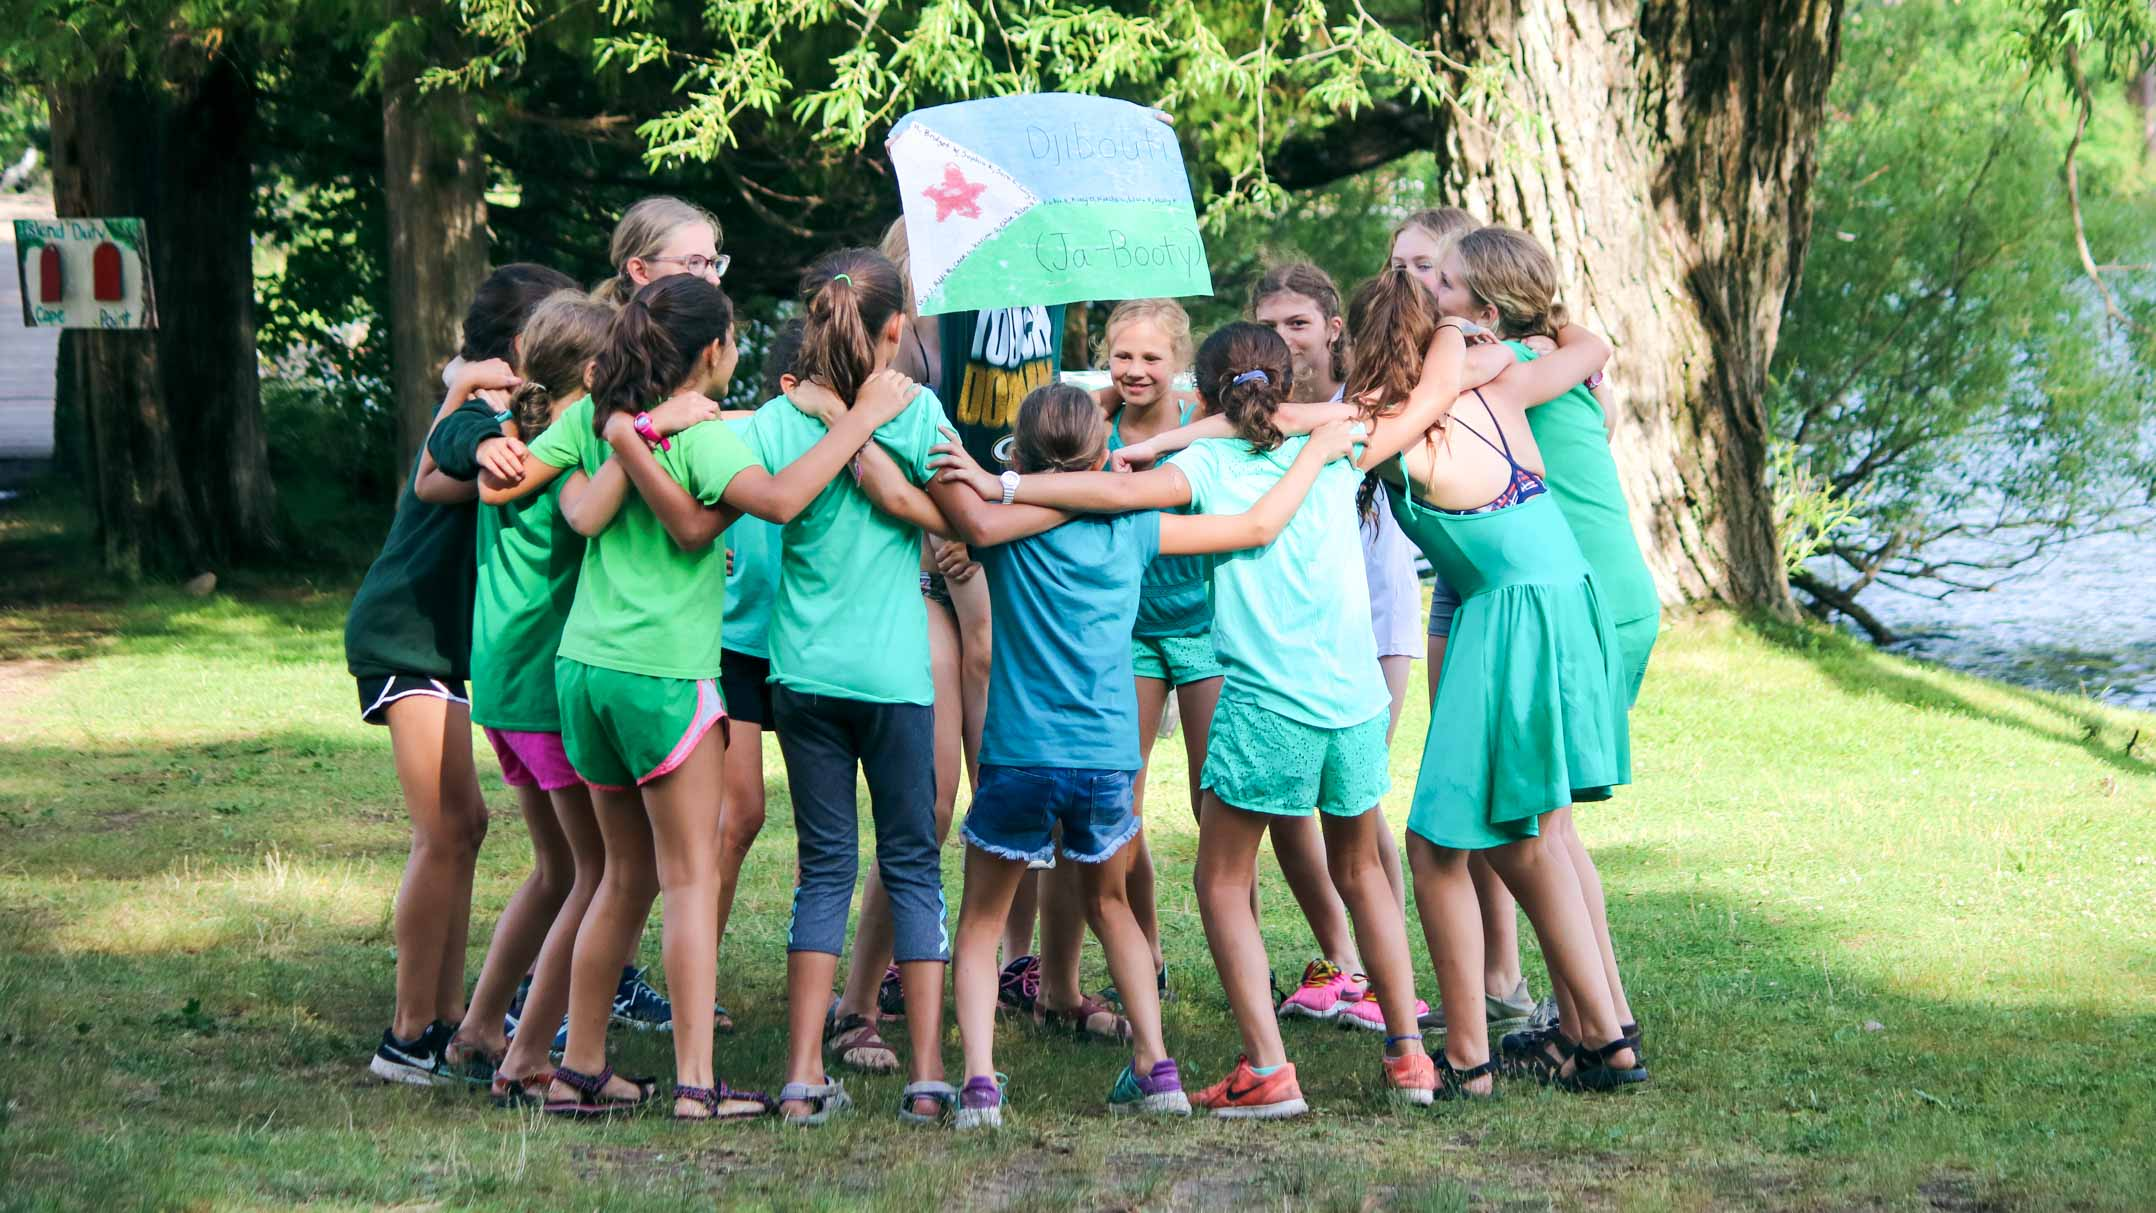 Group of campers circles up, holding camp Olympics Djibouti sign